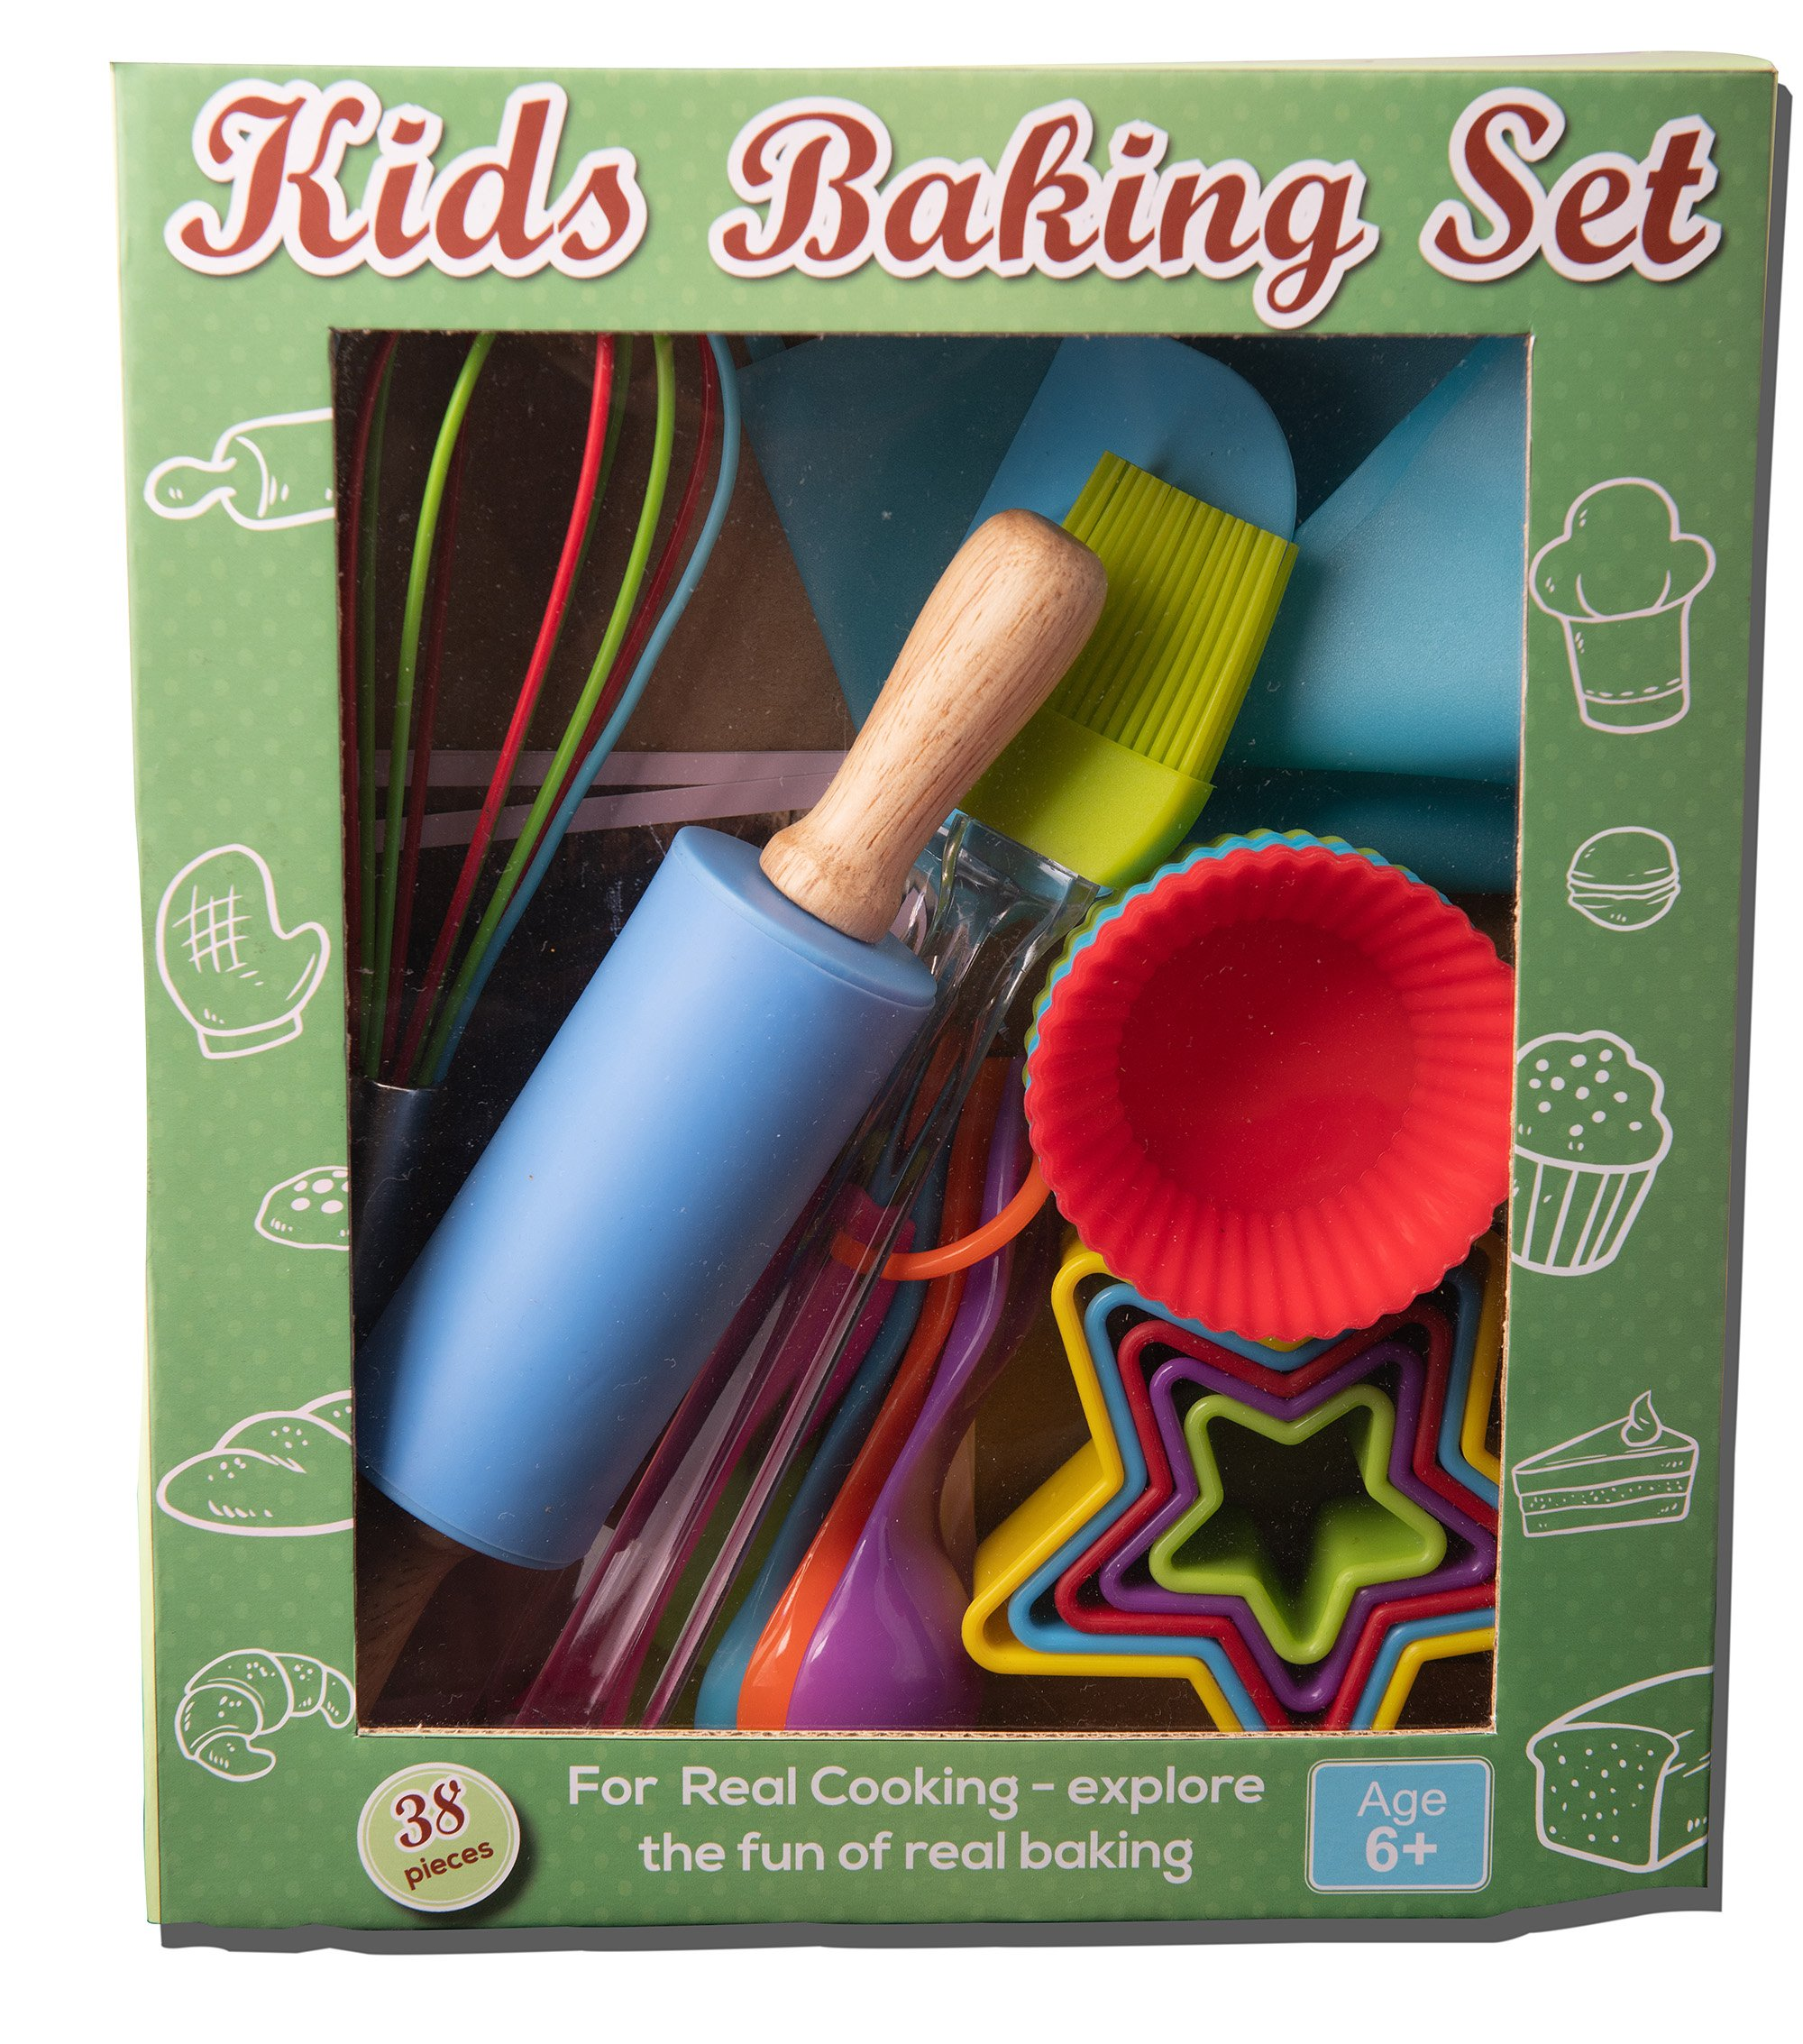 Riki's kingdom kids baking set 3 COMPLETE 38-PIECE BAKING SET! includes everything needed to bake with your children- Comes with 12 silicon baking cups, 1 spatula, 1 pastry brush, 5 measuring spoon, 1 rolling pin, 1 whisk, 5 star shape cookie cutters, piping bag , 6 piping nozzles , coupler and 5 recipe cards FAMILY-FRIENDLY FUN! Complete set ,It's not complicated- every convenience you can ask for and more! Microwave safe, flexible, comfortable for little hands, rust-free, no need to grease pan, withstands heat of melted sugar; sauces and creams don't stick, and the items are reusable to makes your kitchen a little greener STORE SMALL - BAKE BIG - plastic cookie cutters can be nested to save space, the piping bag and apron can be folded up neatly, while silicone items are flexible enough that you can fold it up for easy storage in small areas and they jump right back into shape when unfolded